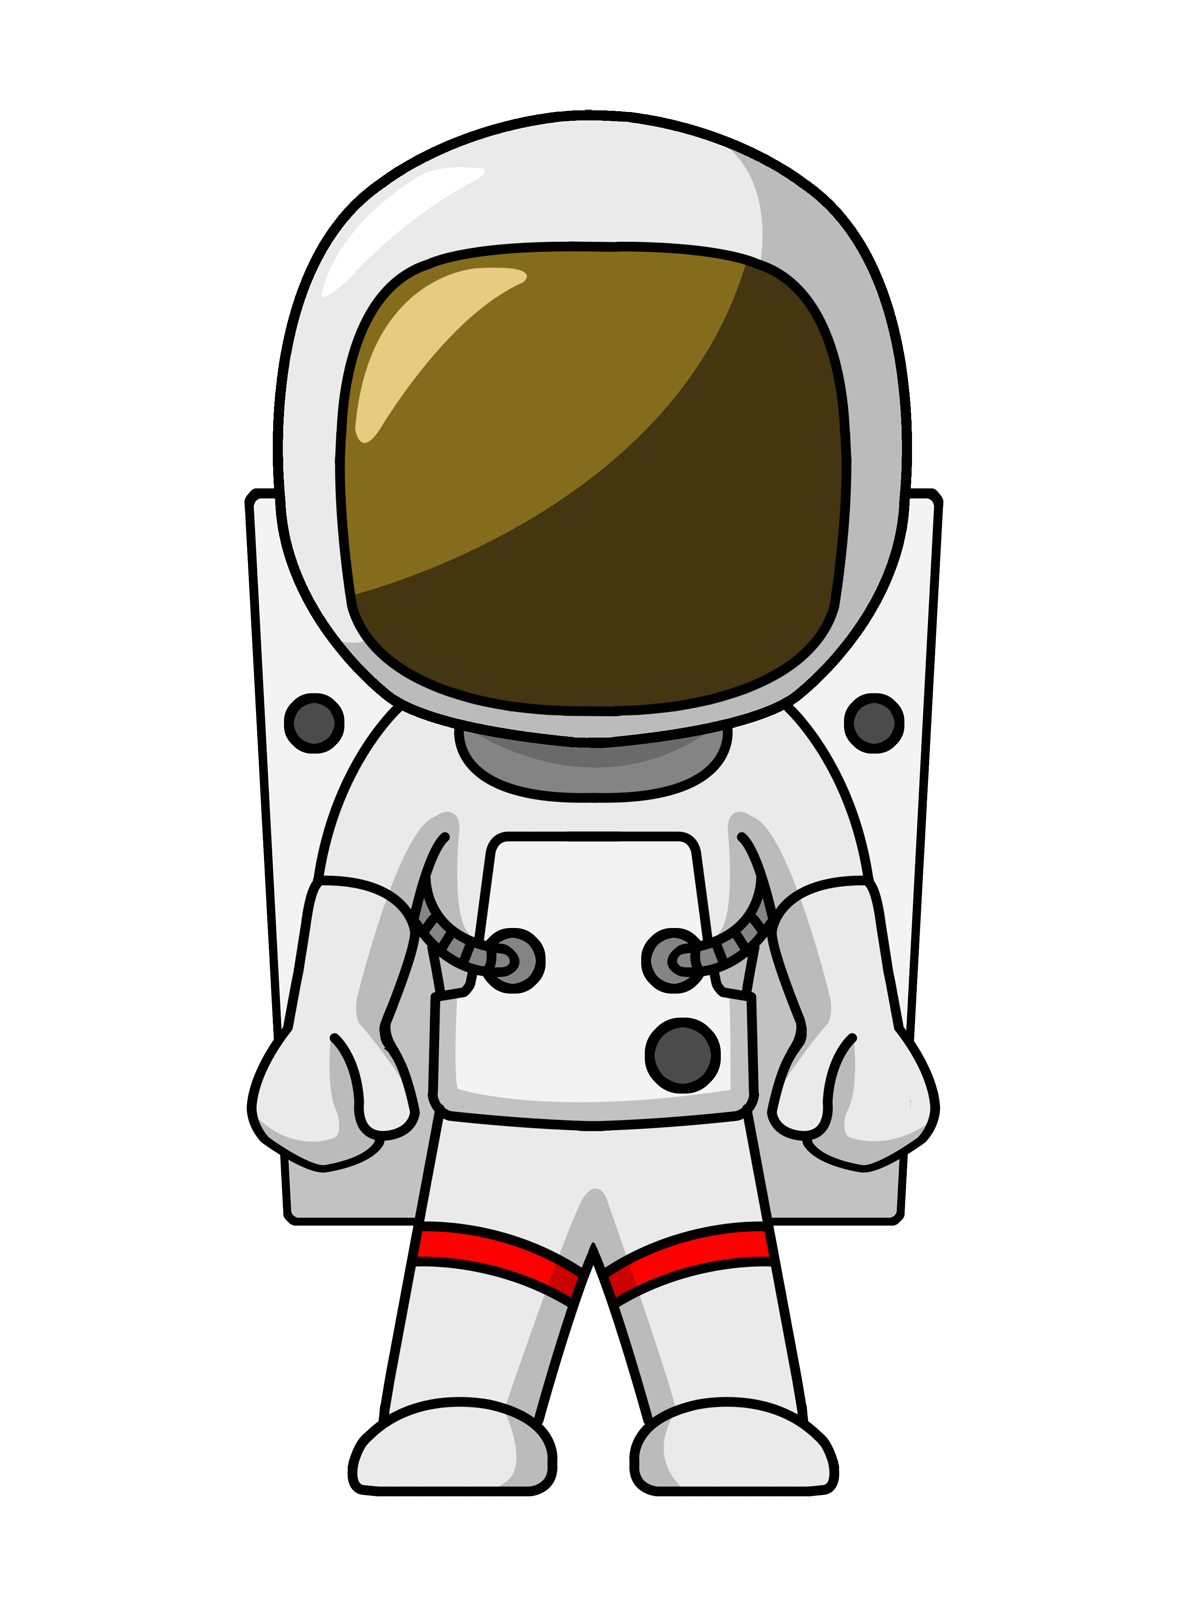 Astronaut clipart #14, Download drawings